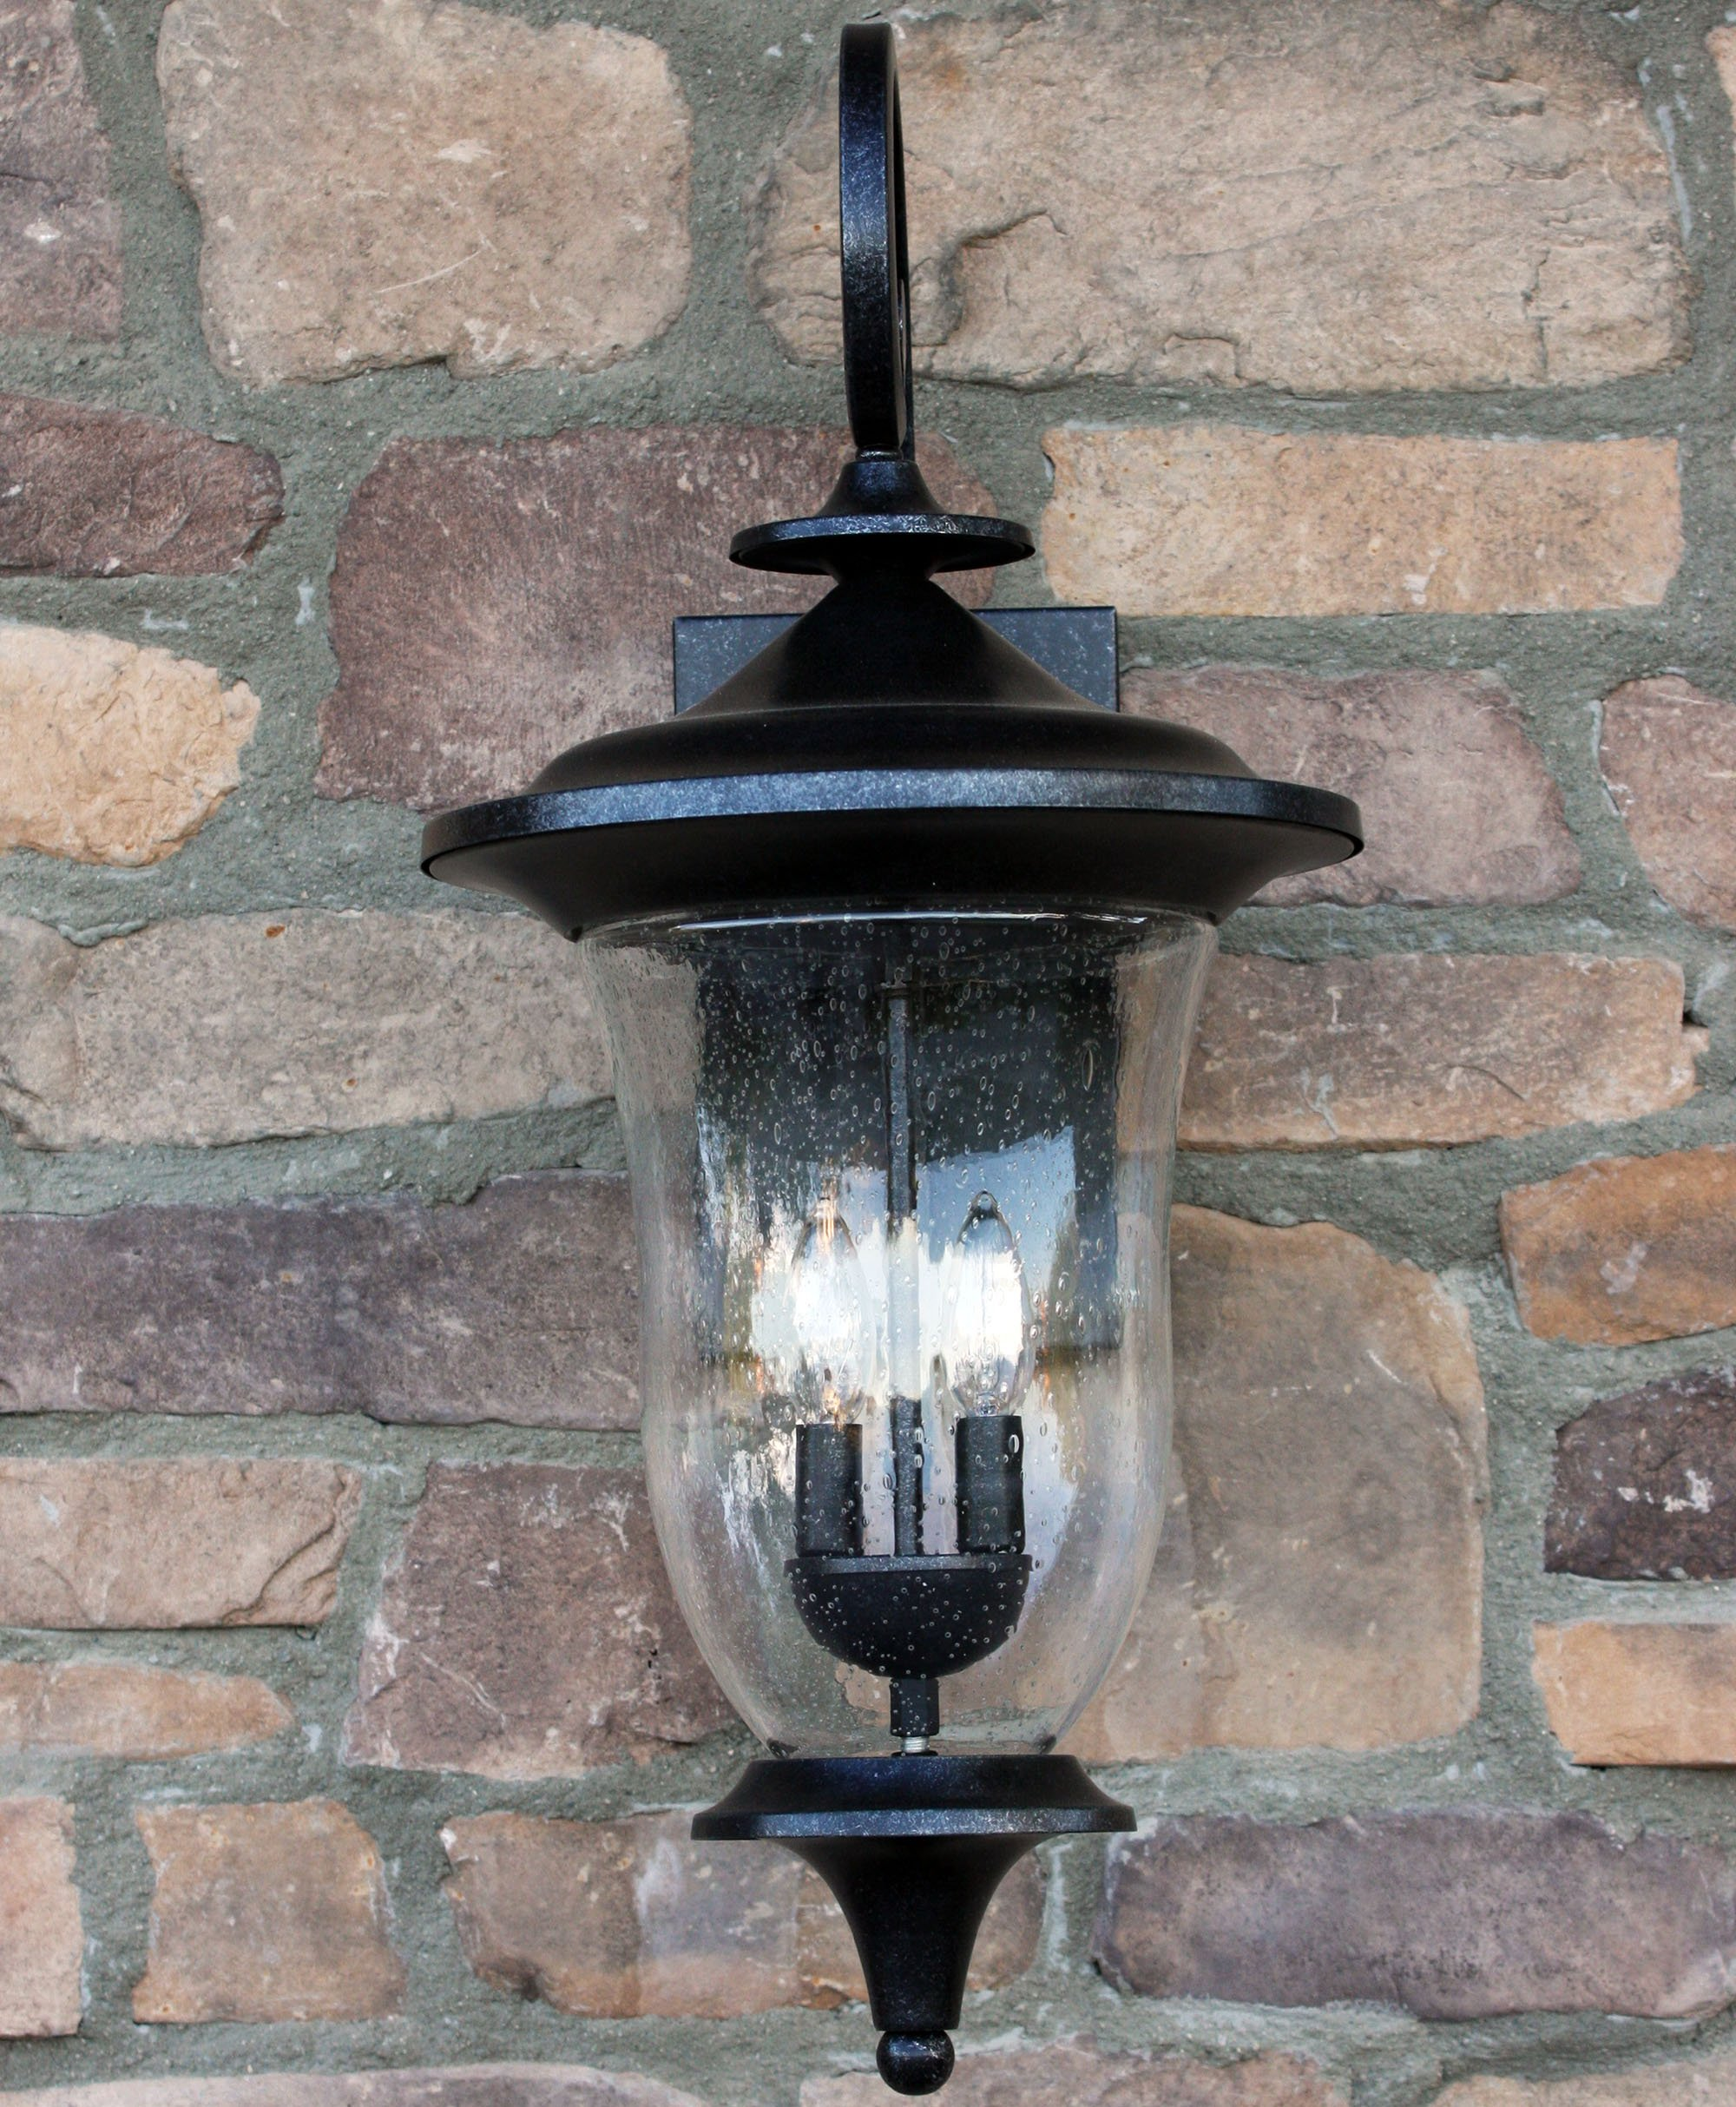 Y Decor EL8001ST-2L Modern, Transitional, Traditional, Rustic 2 Light Exterior Outdoor Wall Sconce Brownstone with Clear Seedy Glass Large Size By Y Décor, , Stone, Charcoal, Black